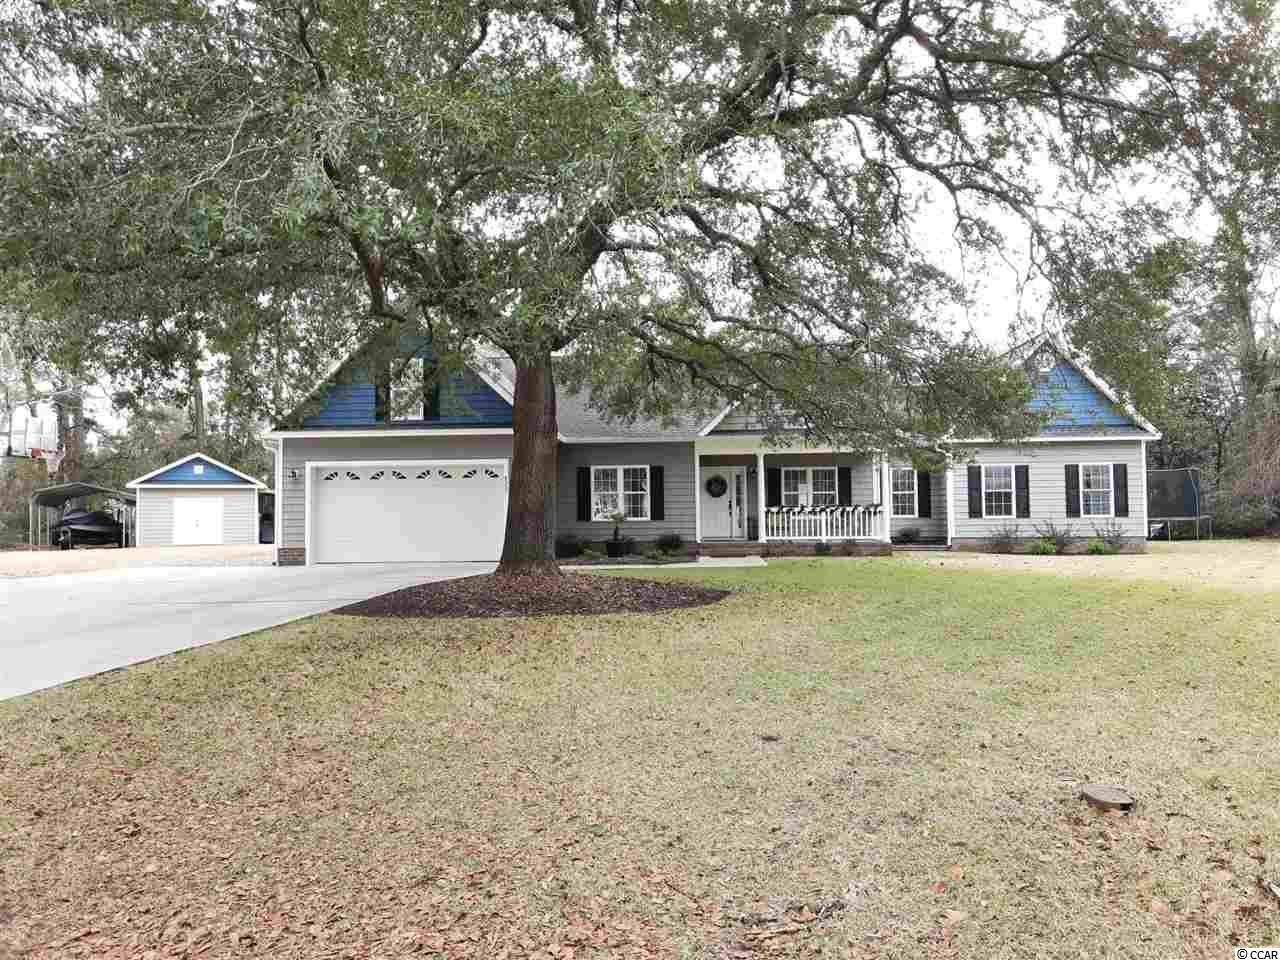 Stop looking, your forever home search is over. This sprawling home in Murrells Inlet meets every one of your needs and desires. Located on a quiet cul-de-sac , Johnson Circle (off Goude Street) is a non HOA community. The lot has plenty of room for any, and all the toys you have or want. Large front and backyard. Detached 16x24 shed/workshop with 3 lean-to's off the building. The oasis out of your backdoor features a 30x15 pool with a 10x10 tanning ledge along with a paver pool deck, and, firepit. The home has a wonderfully designed split floor plan. The master bedroom features his/her walk-in closets, double vanity, tiled shower, and, tub. The Kitchen features granite counter-tops, stainless appliances, and, a monster walk-in pantry. Large living room that opens into a Carolina Room overlooking the pool. There are 3 other 1st floor bedrooms with 2.5 bathrooms. Over the garage is a large finished bonus room. The attic space for this home will accommodate every single holiday decoration box , and , all of grandmas hand me downs, it's huge. Just for good measure on engineering, this home features a metal roof truss design, you hardly find that. This location and home offer the very best of Murrells Inlet living. Just a half mile from the Inlet, and, 2 miles to the Intracoastal waterway. Stop dreaming and start living.